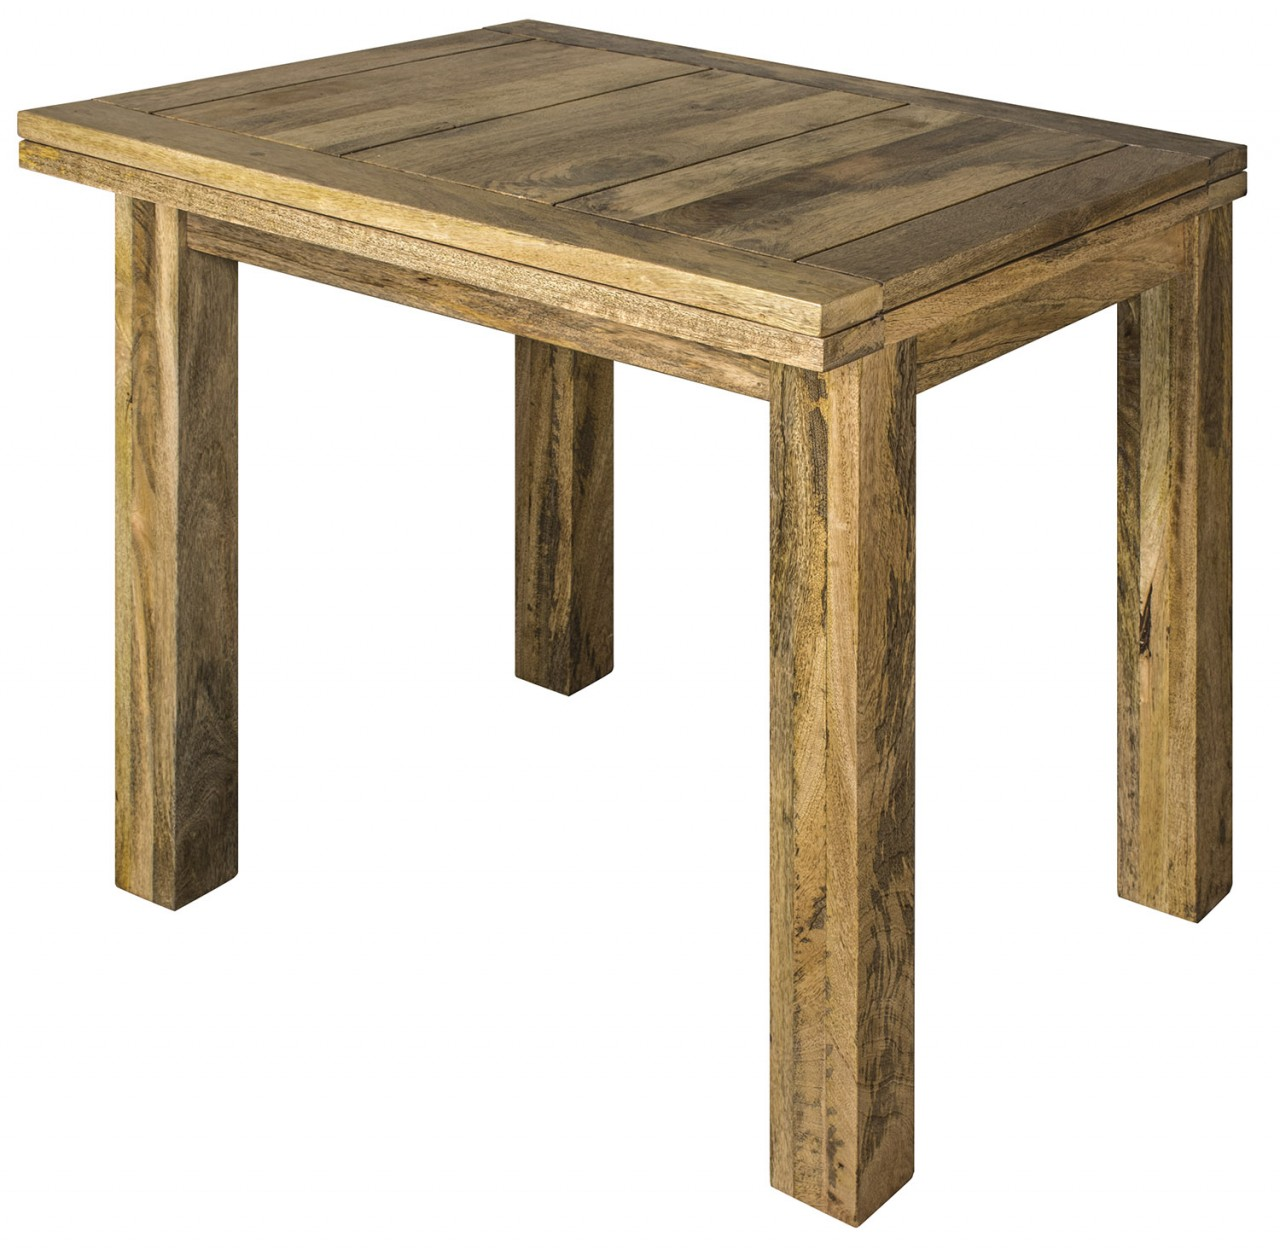 Granary Royale Small Oblong Butterfly Dining Table - DSC